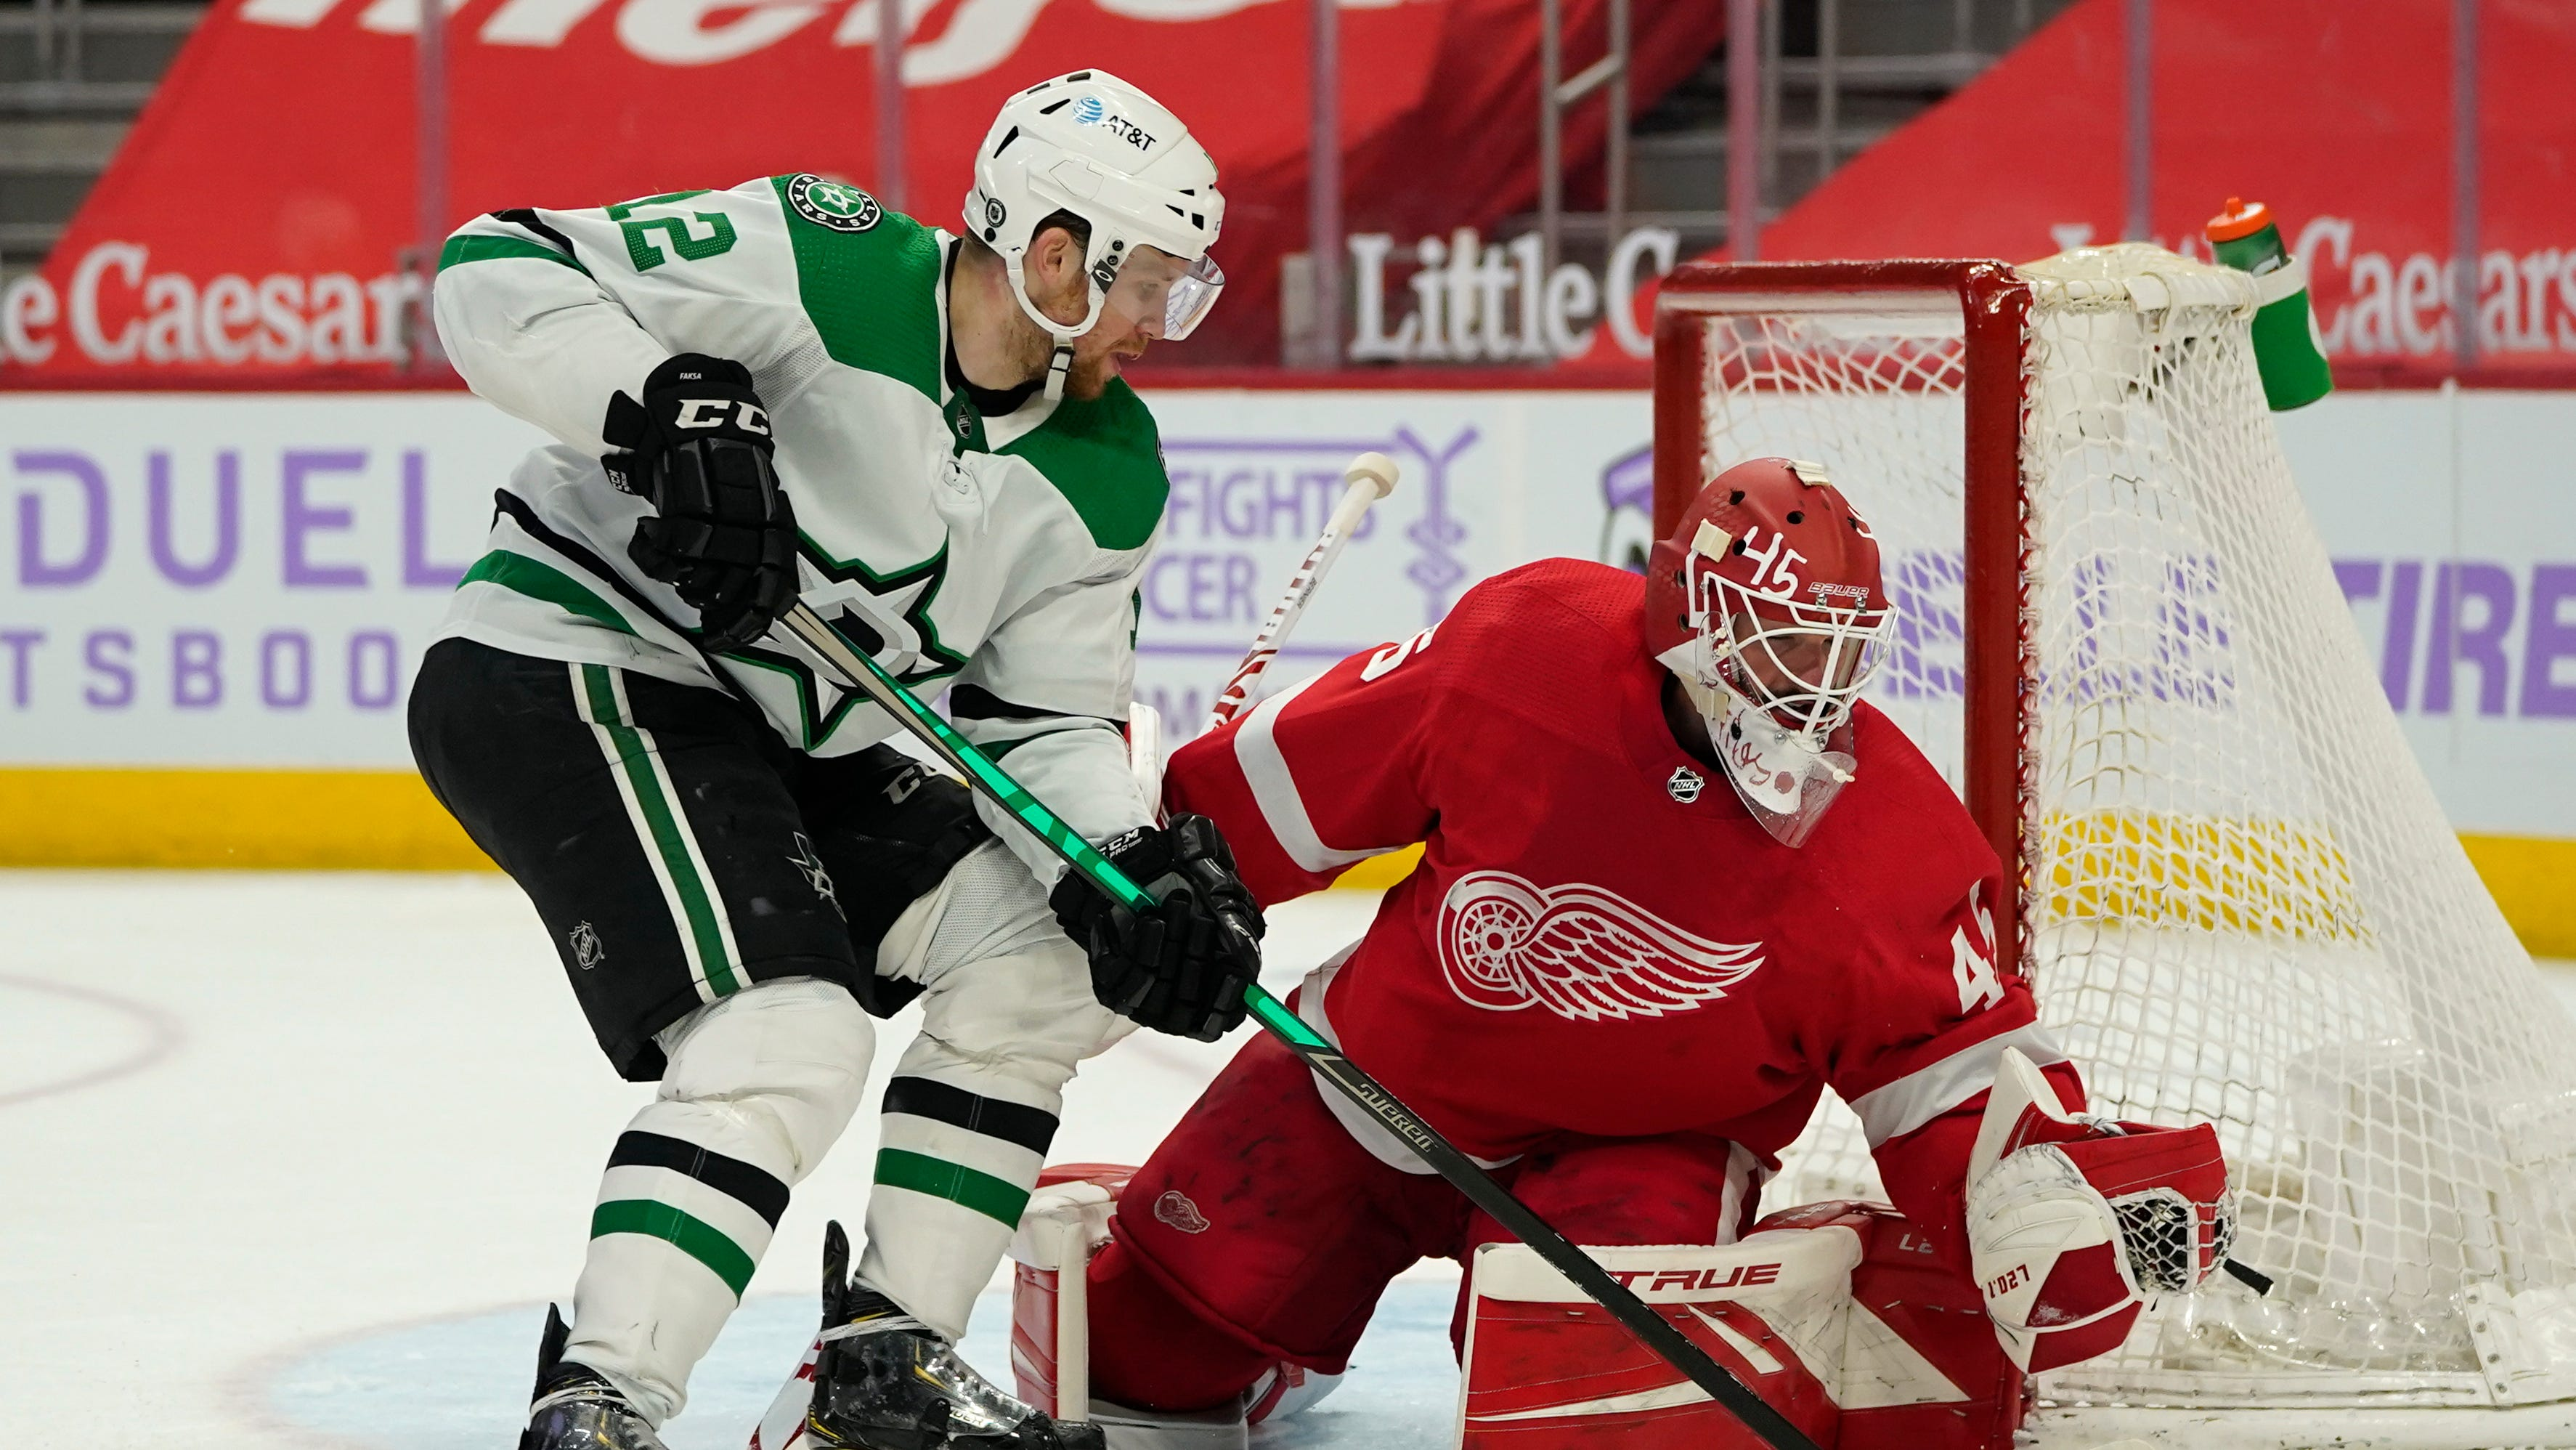 Detroit Red Wings goaltender Jonathan Bernier (45) stops a Dallas Stars center Radek Faksa (12) shot in the third period of an NHL hockey game Saturday, April 24, 2021, in Detroit.